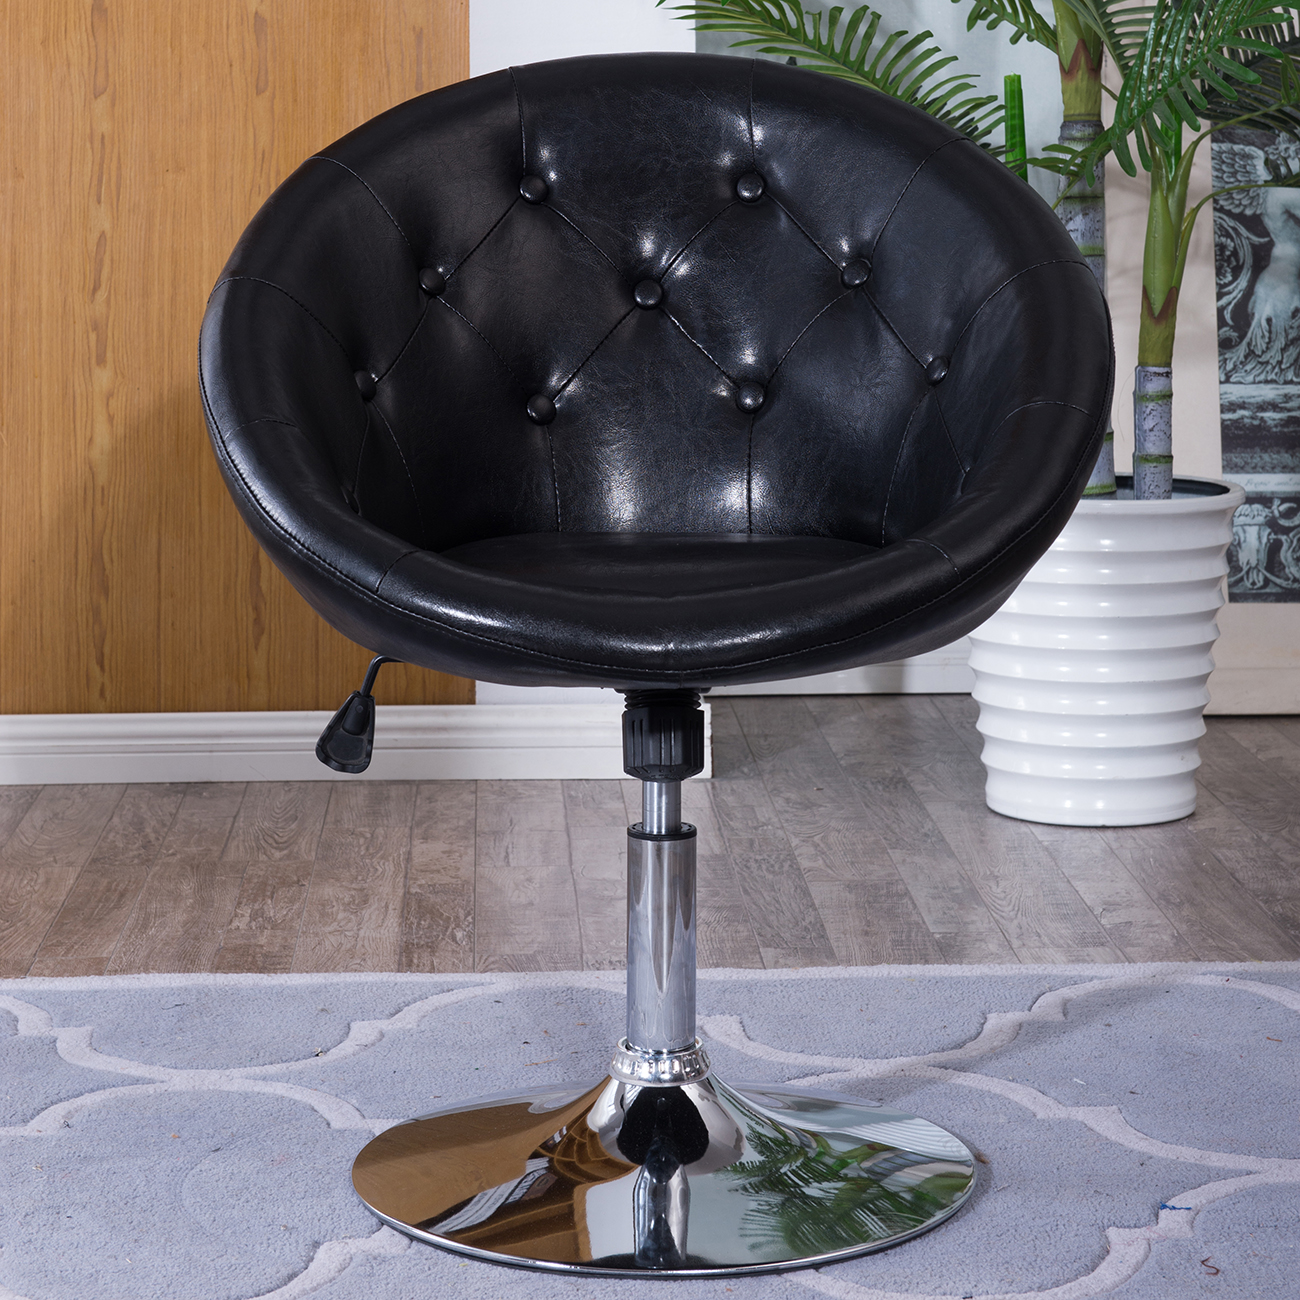 Comfortable Vanity Chair Round Back Swivel Black Chair Vanity Makeup Vinyl Stool